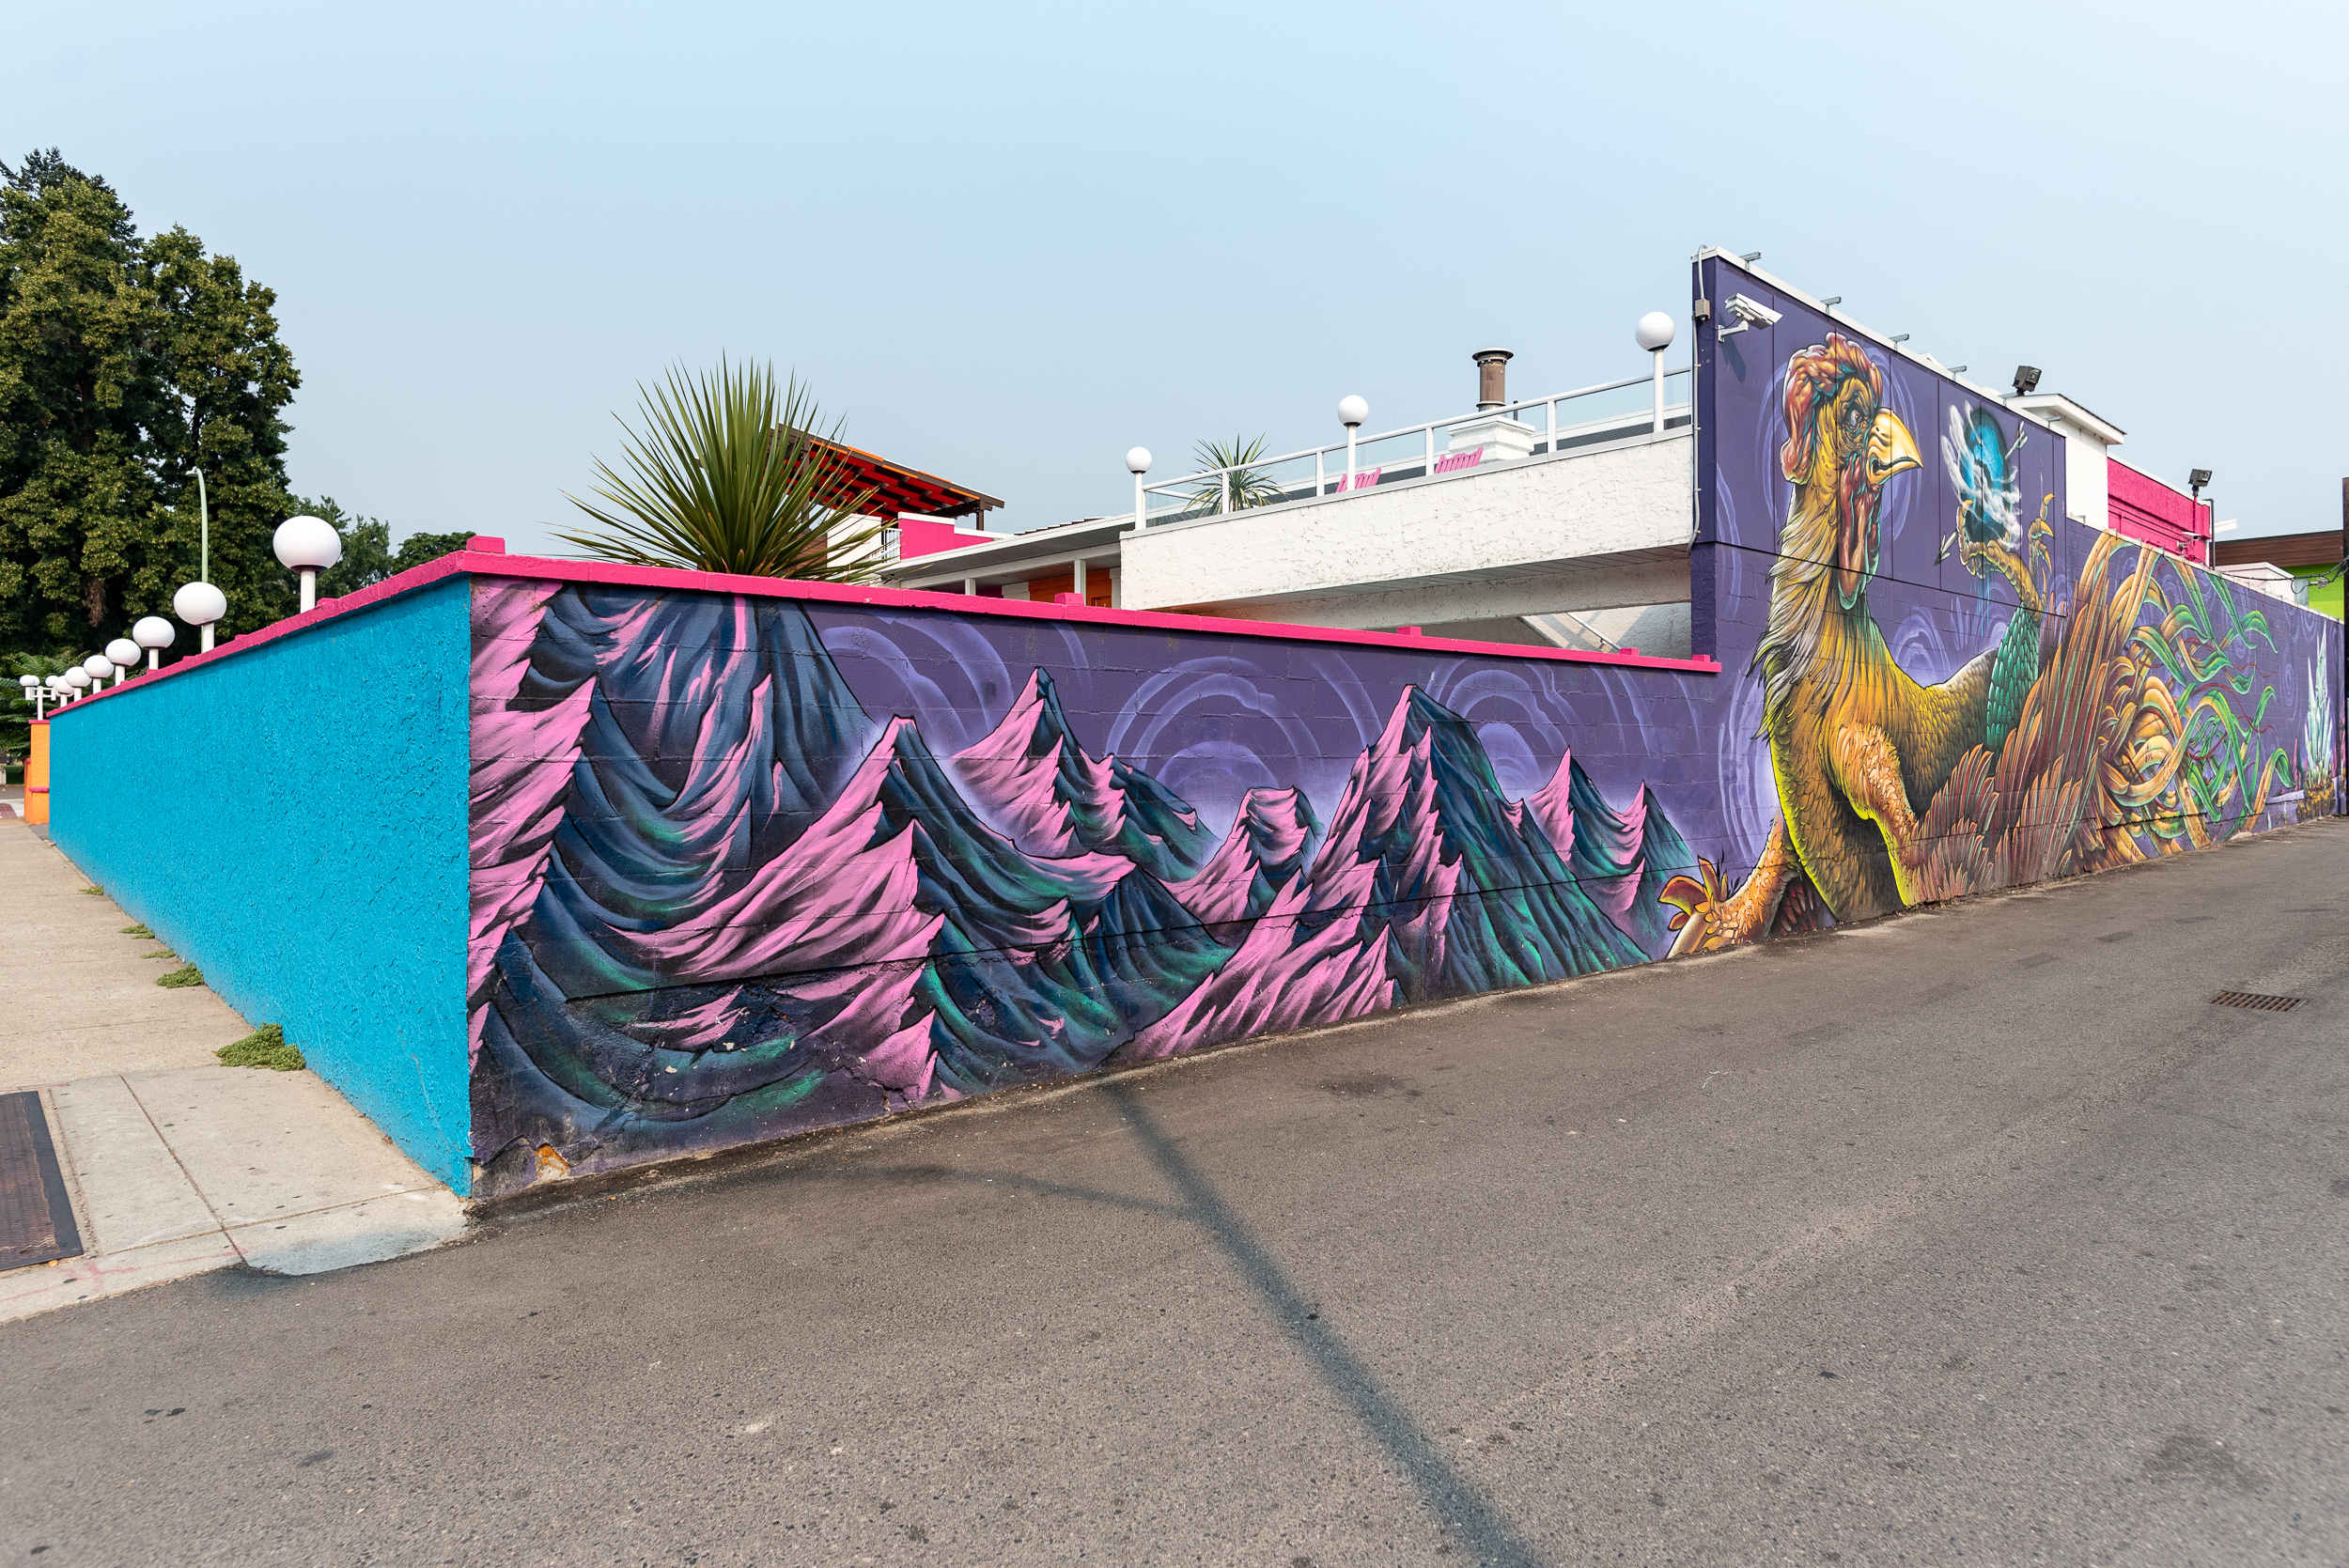 Large-scale mural on the side of the property.